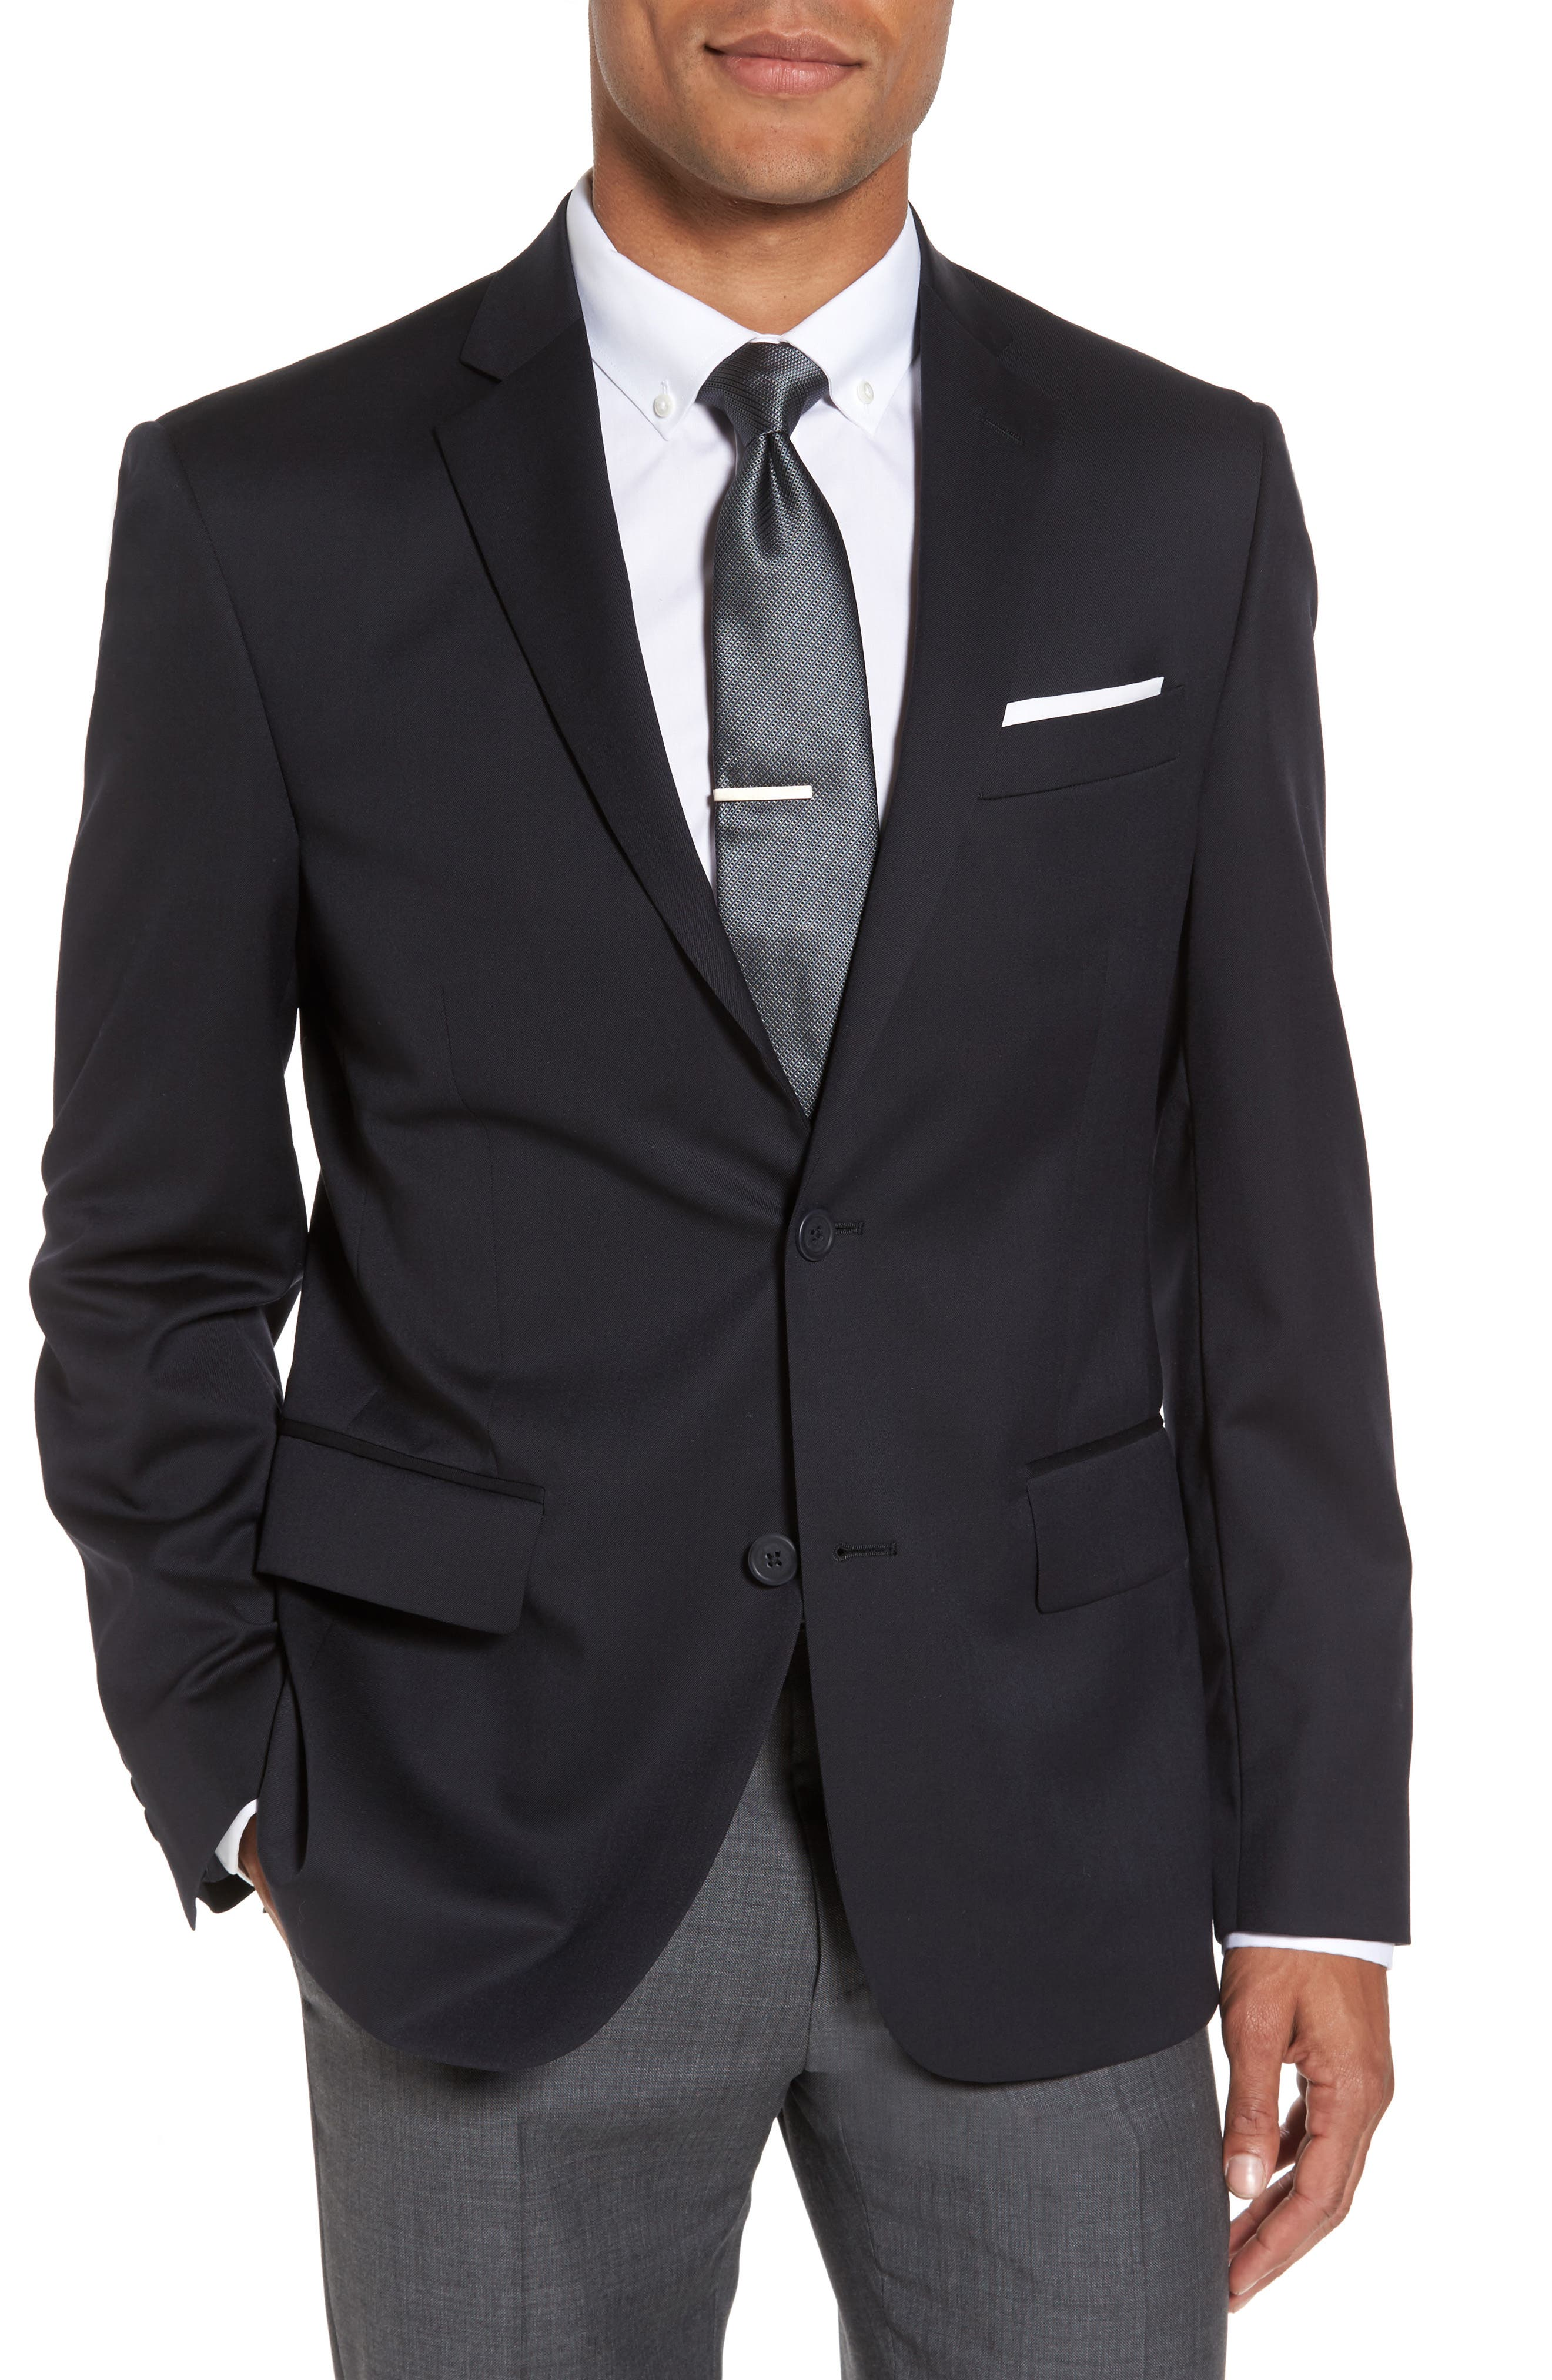 Main Image - Nordstrom Men's Shop Classic Fit Solid Wool Sport Coat